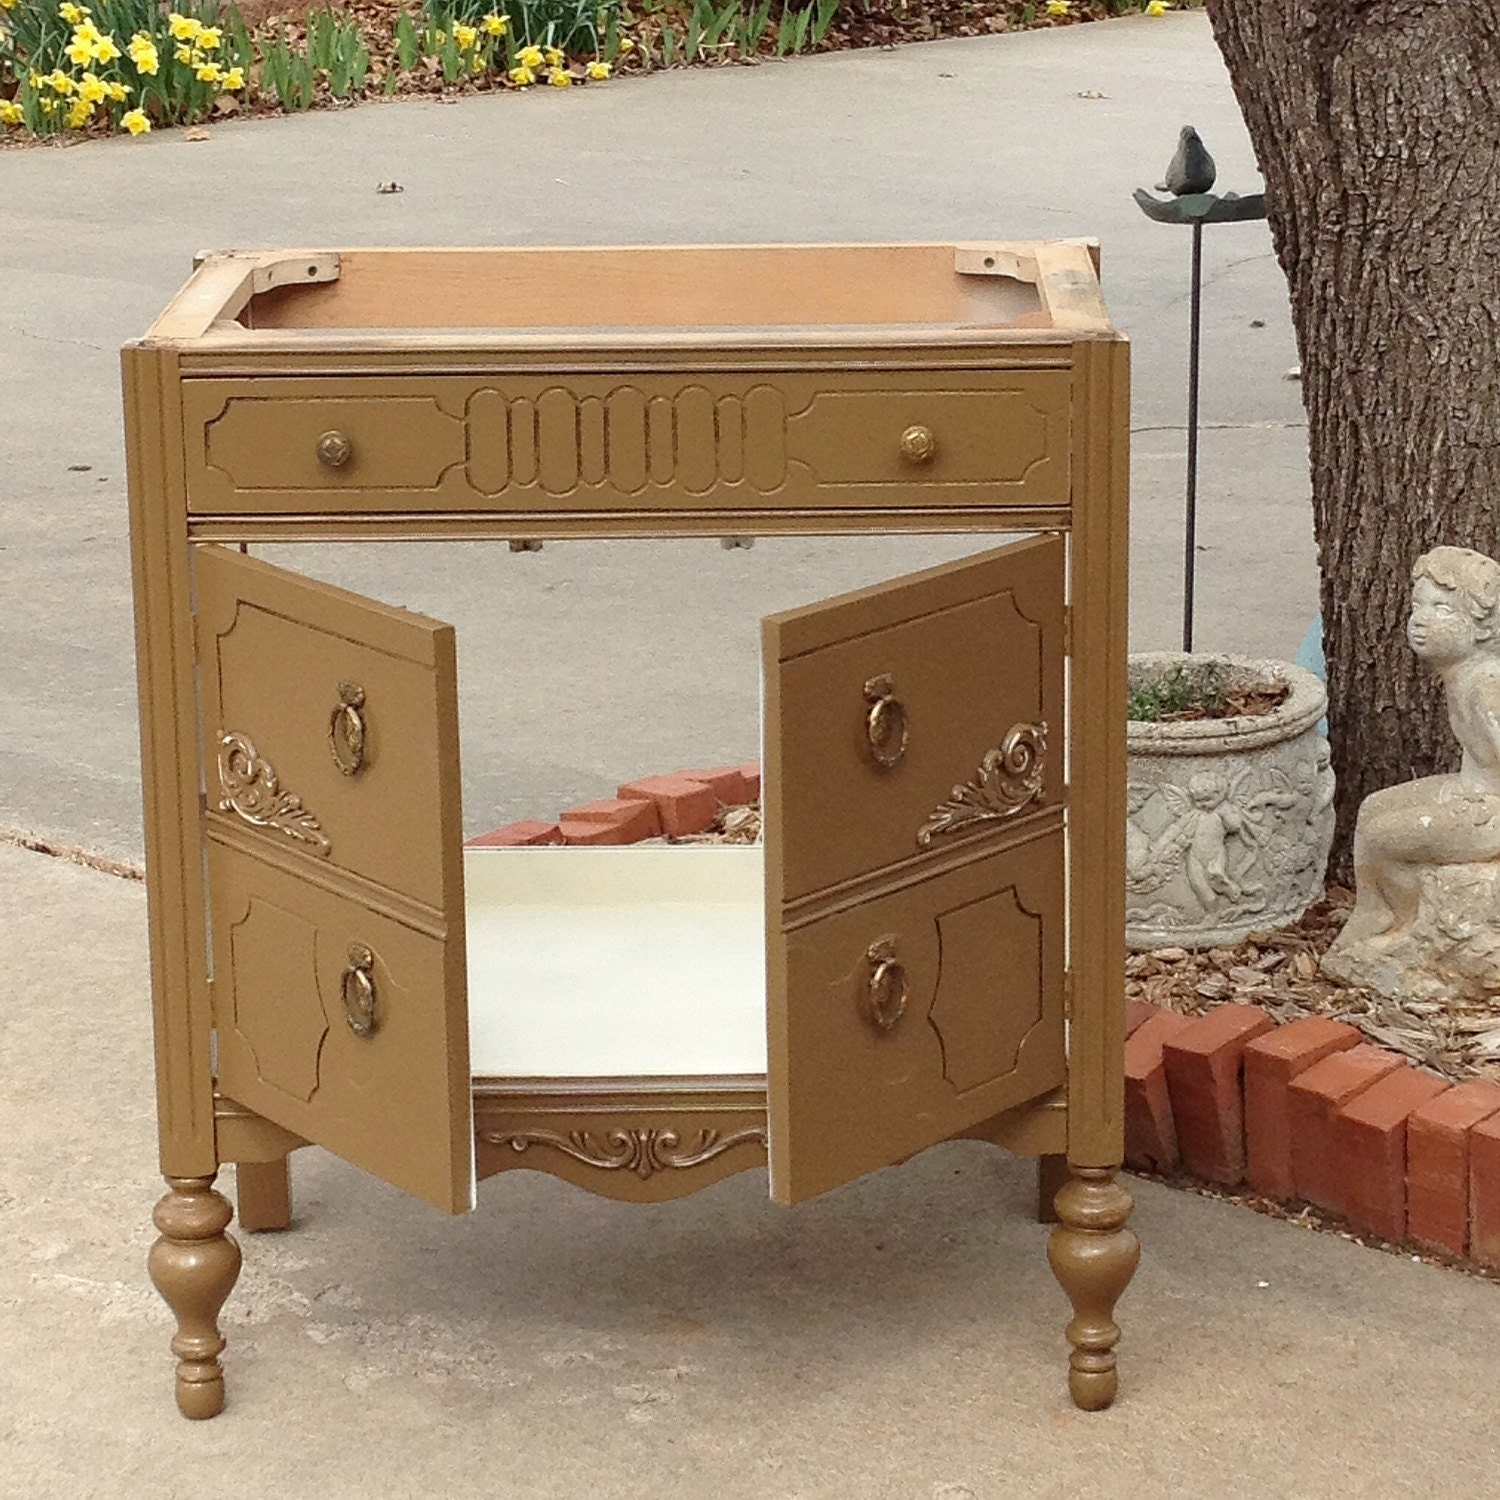 Bath Vanity Cabinet From Antique Dresser Custom To Order Converted For Bathroom 28 To 48 Wide